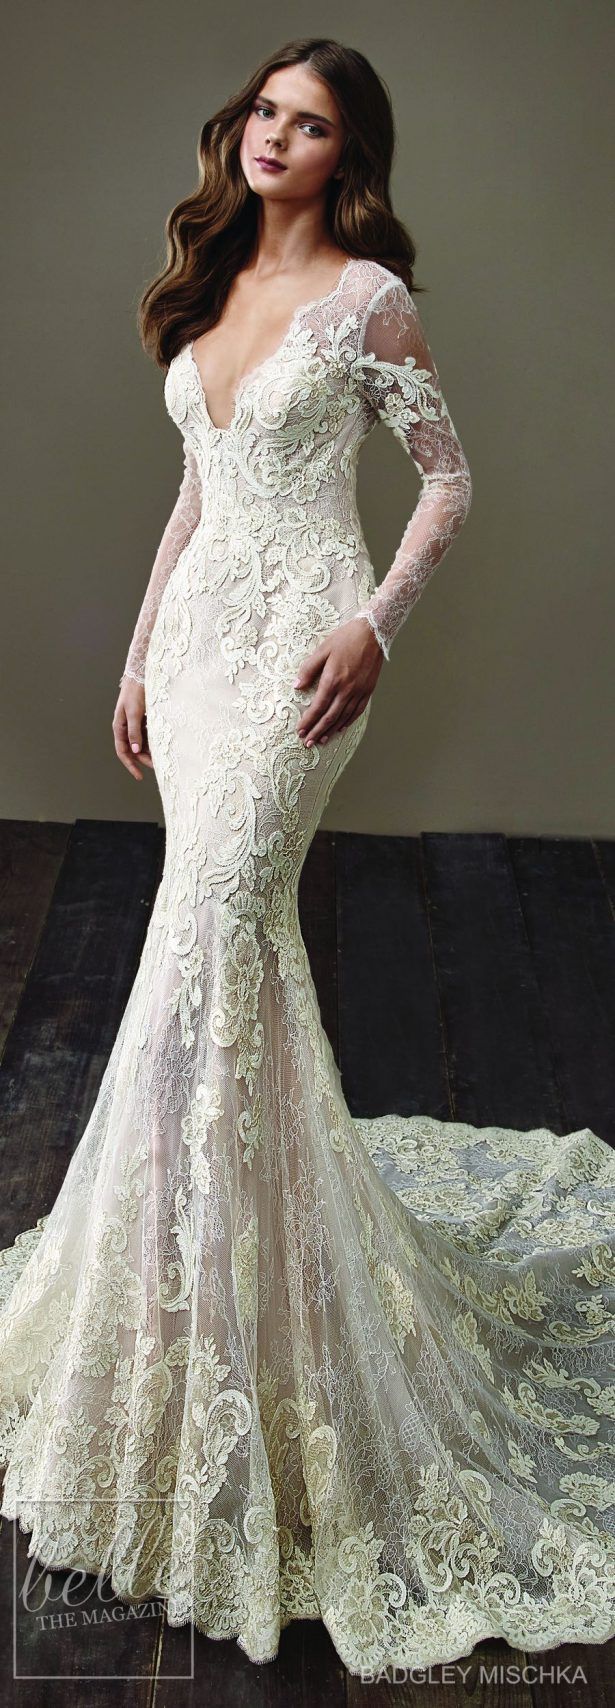 Wedding Dress by Badgley Mischka Bride Collection 2018